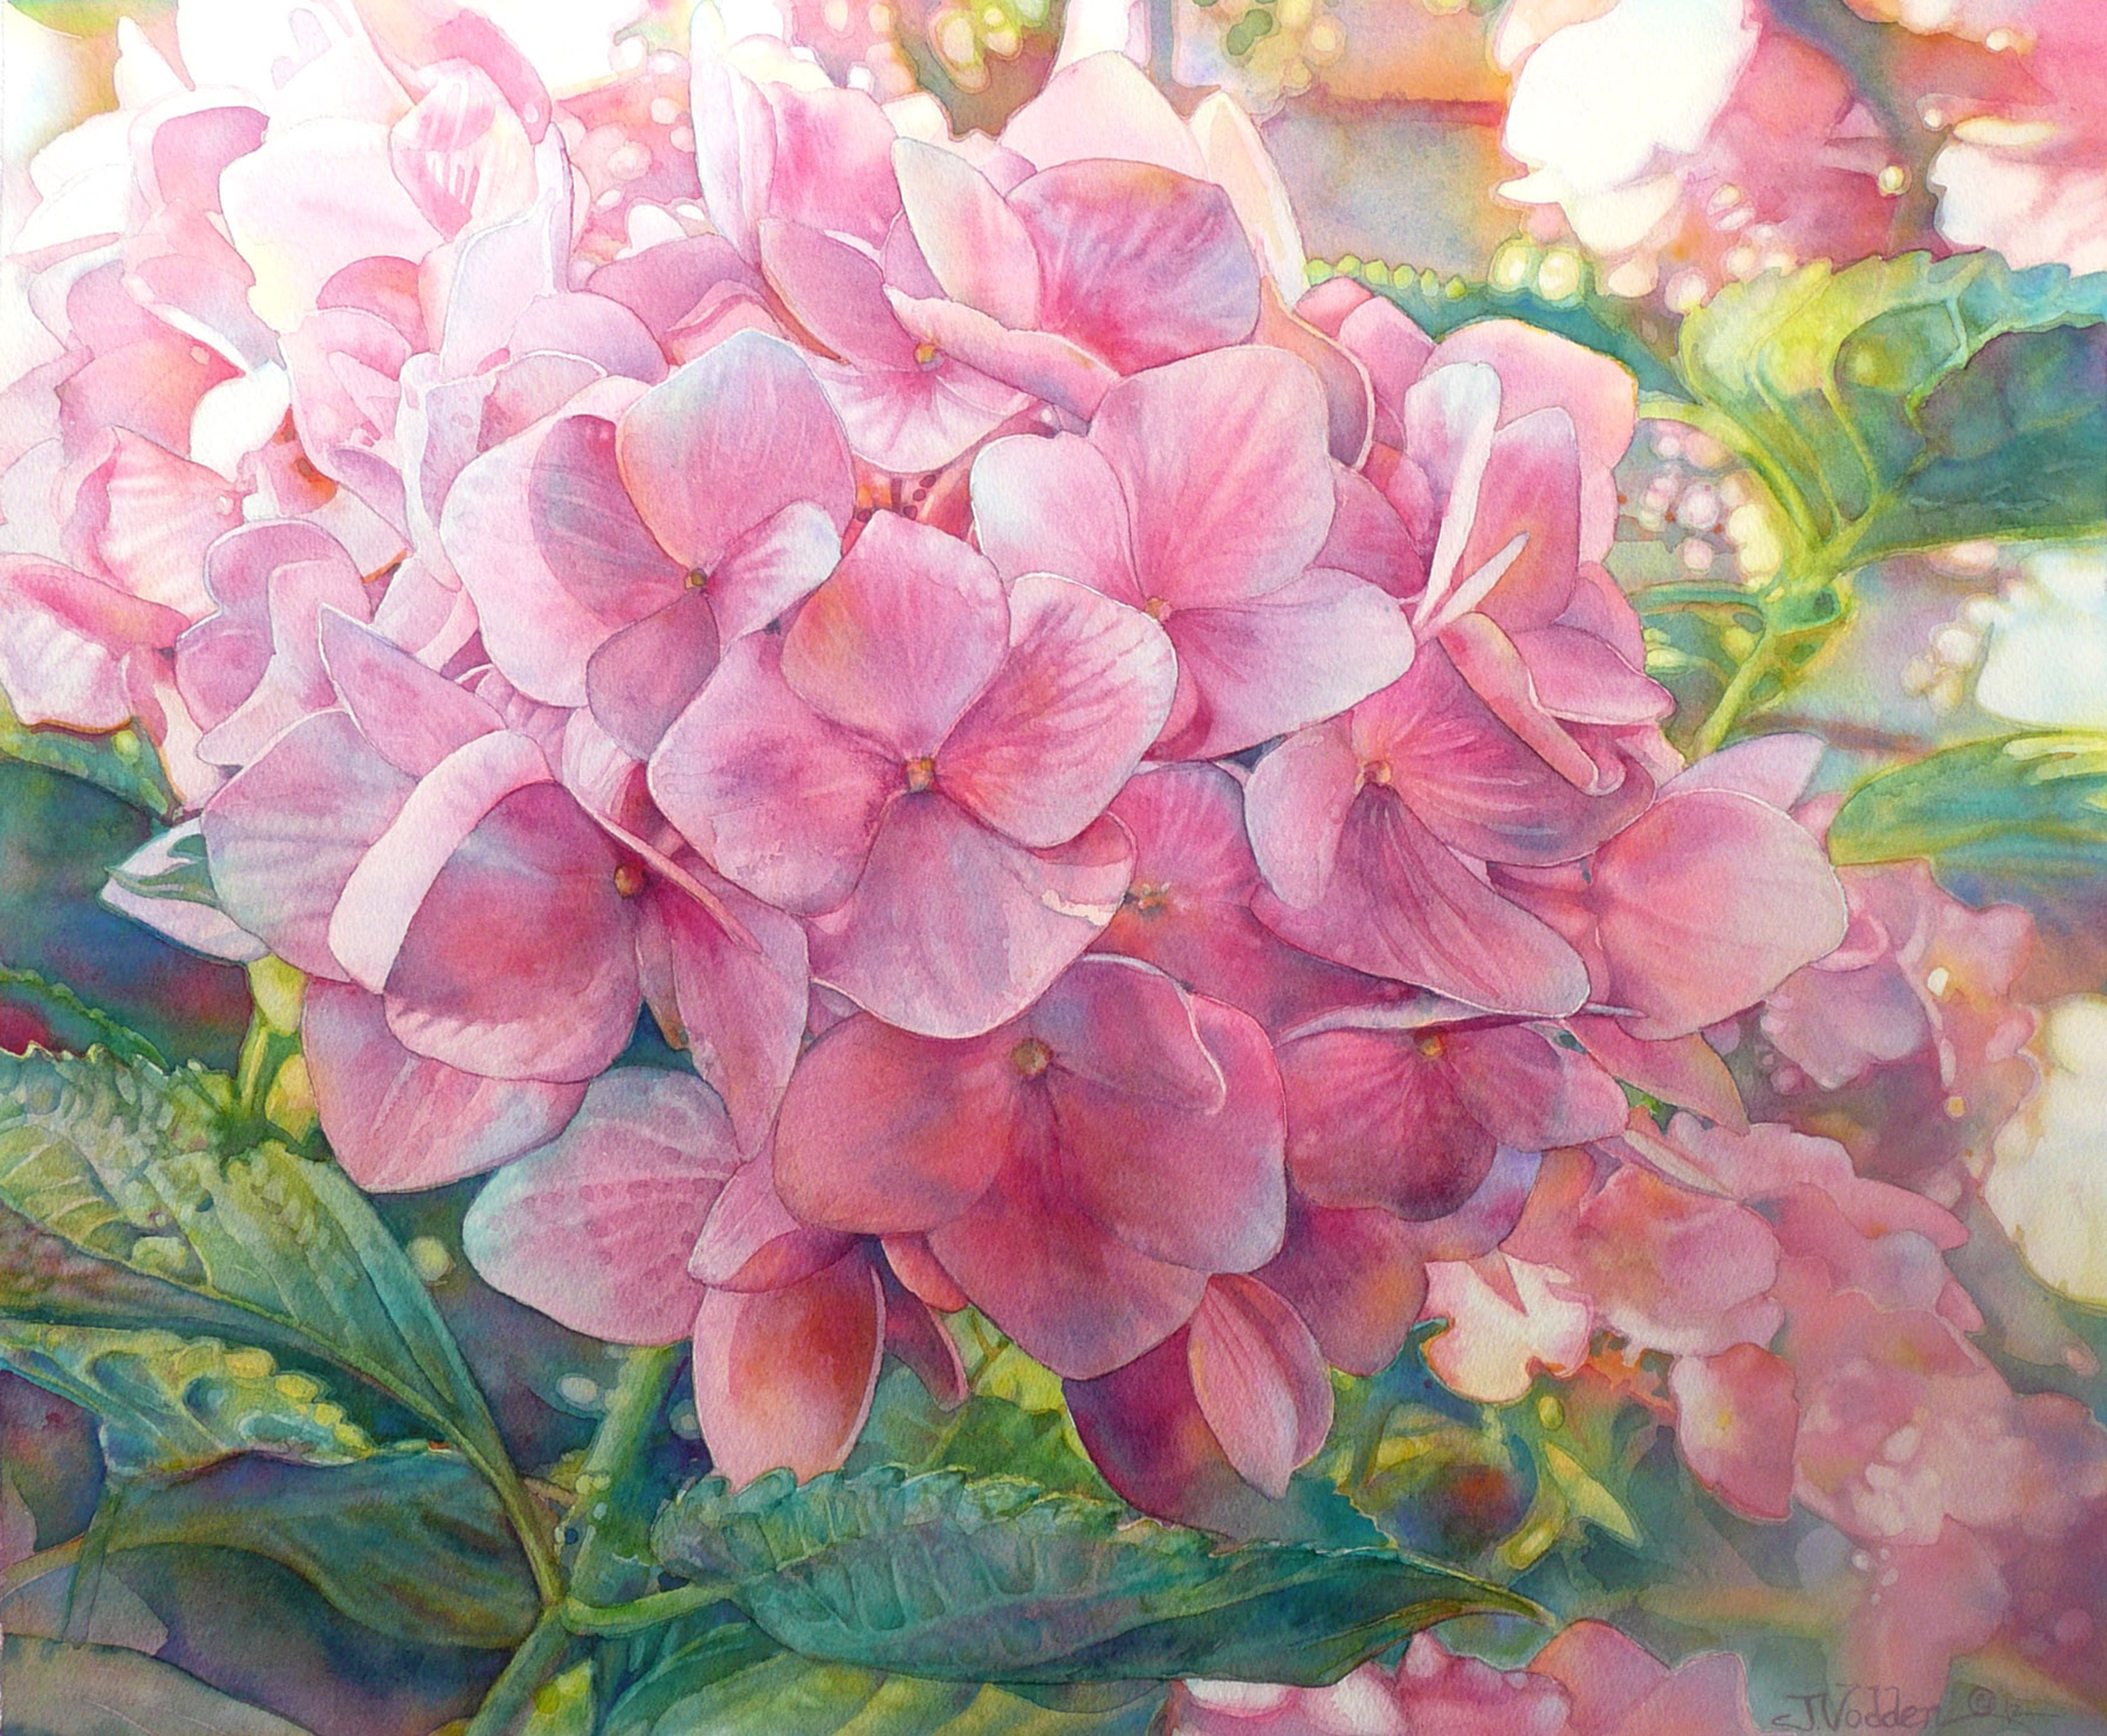 Watercolor artist websites - Watercolor Hydrangea Jeannie Vodden I Simply Love Love Love These Flowers No Matter